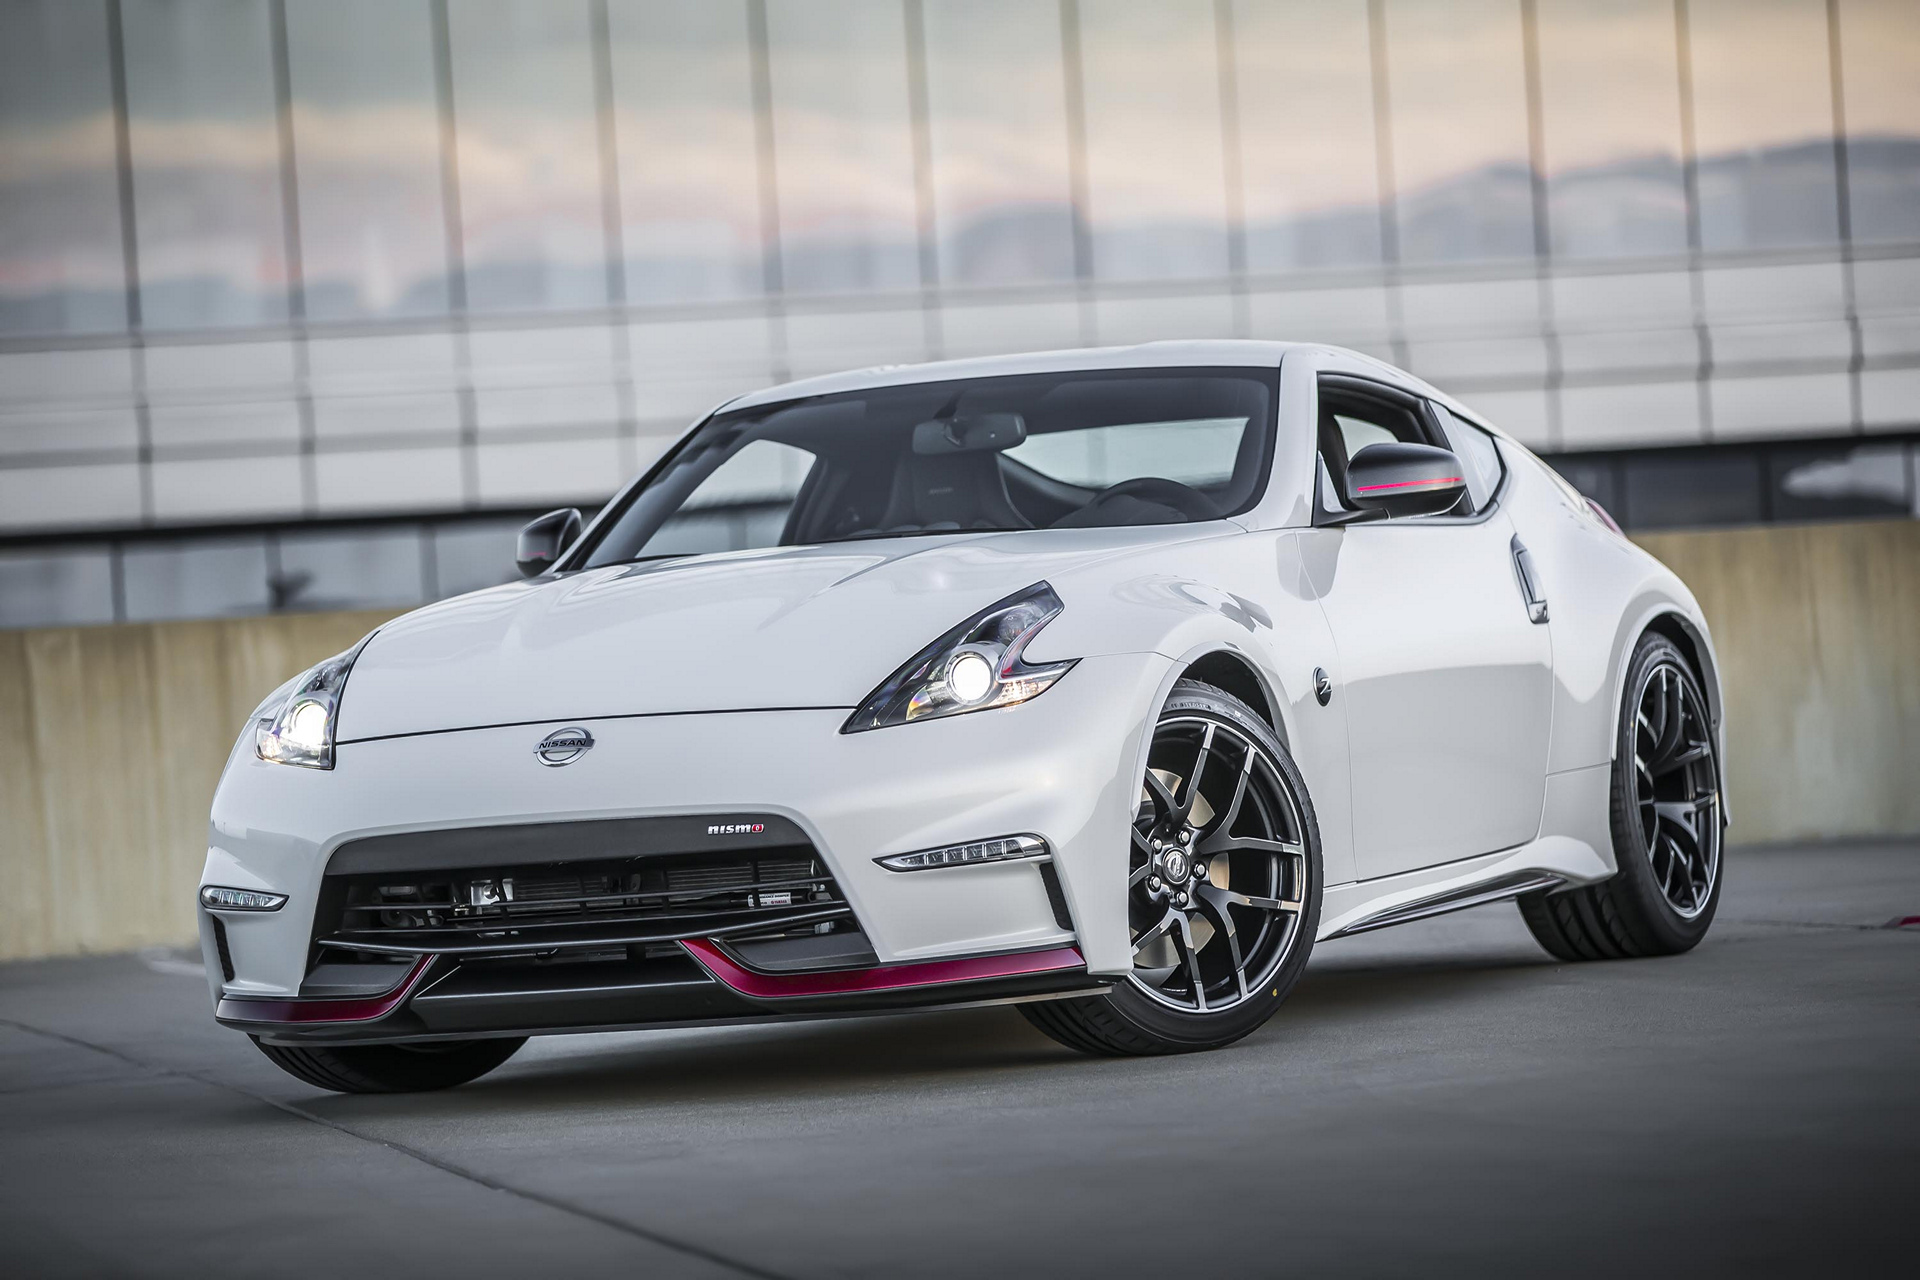 2017 Nissan 370Z NISMO © Nissan Motor Co., Ltd.